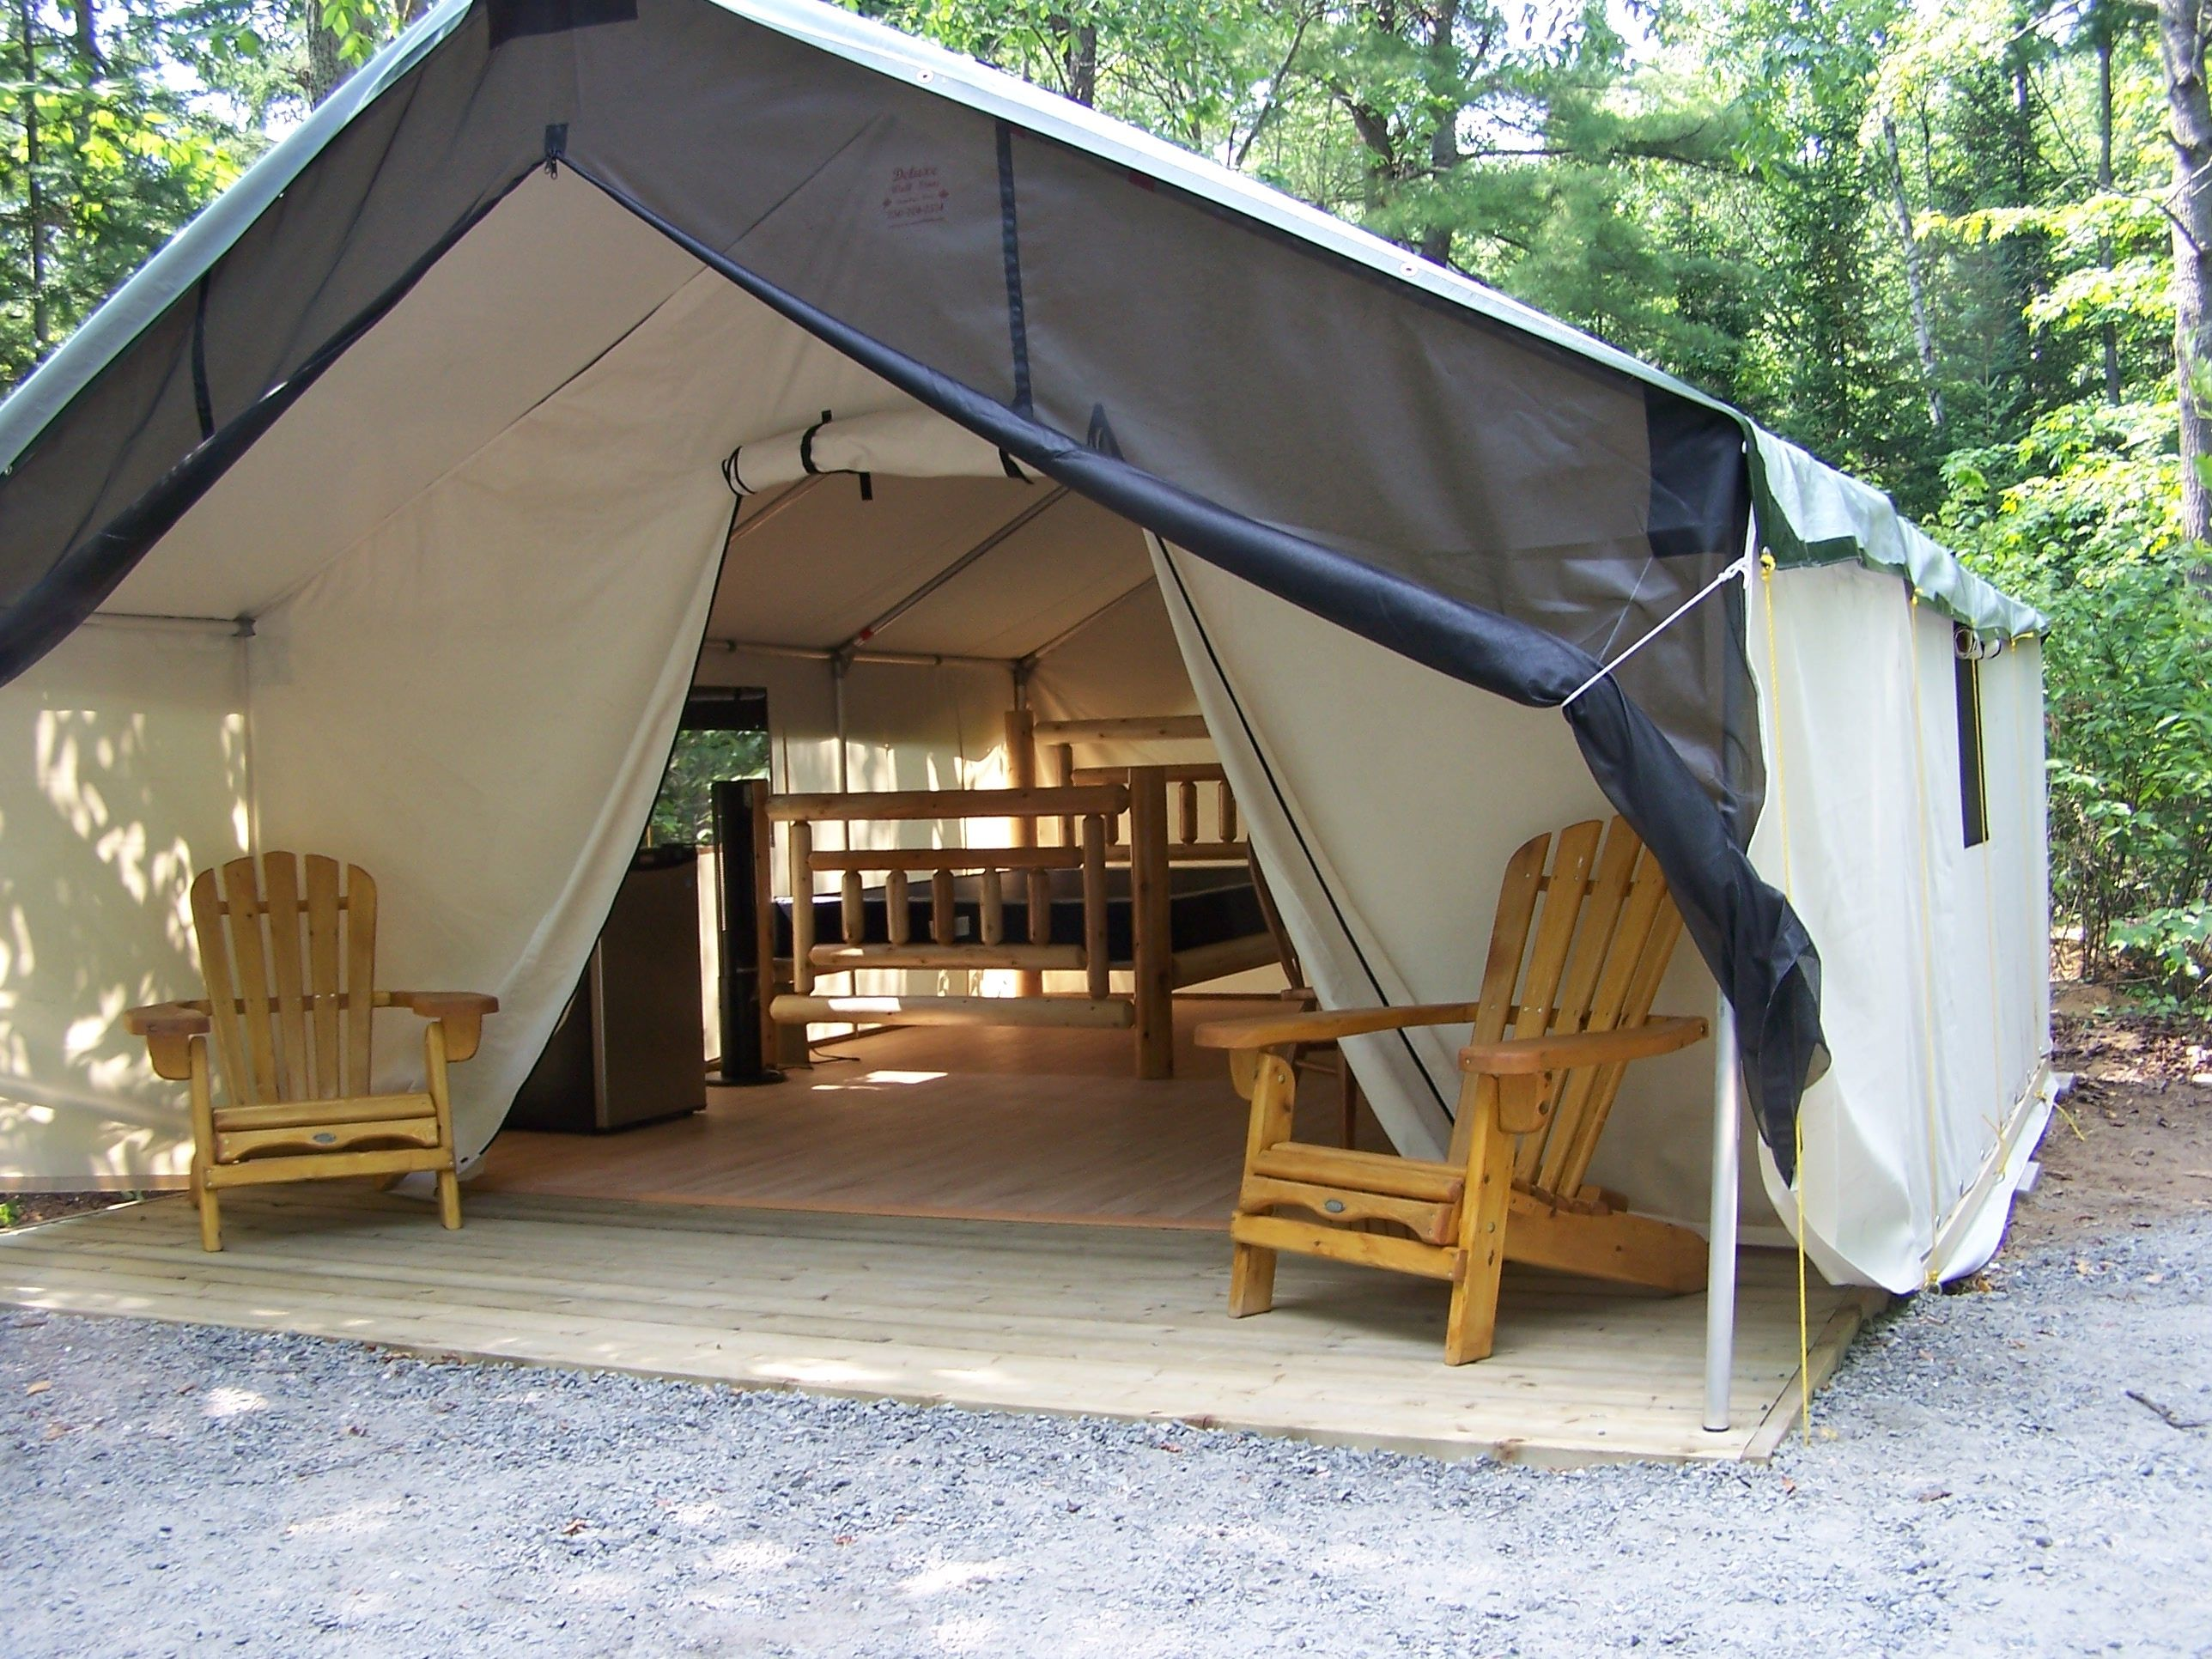 Camping Tent With Screen Porch Camp In Comfort Parks Blog